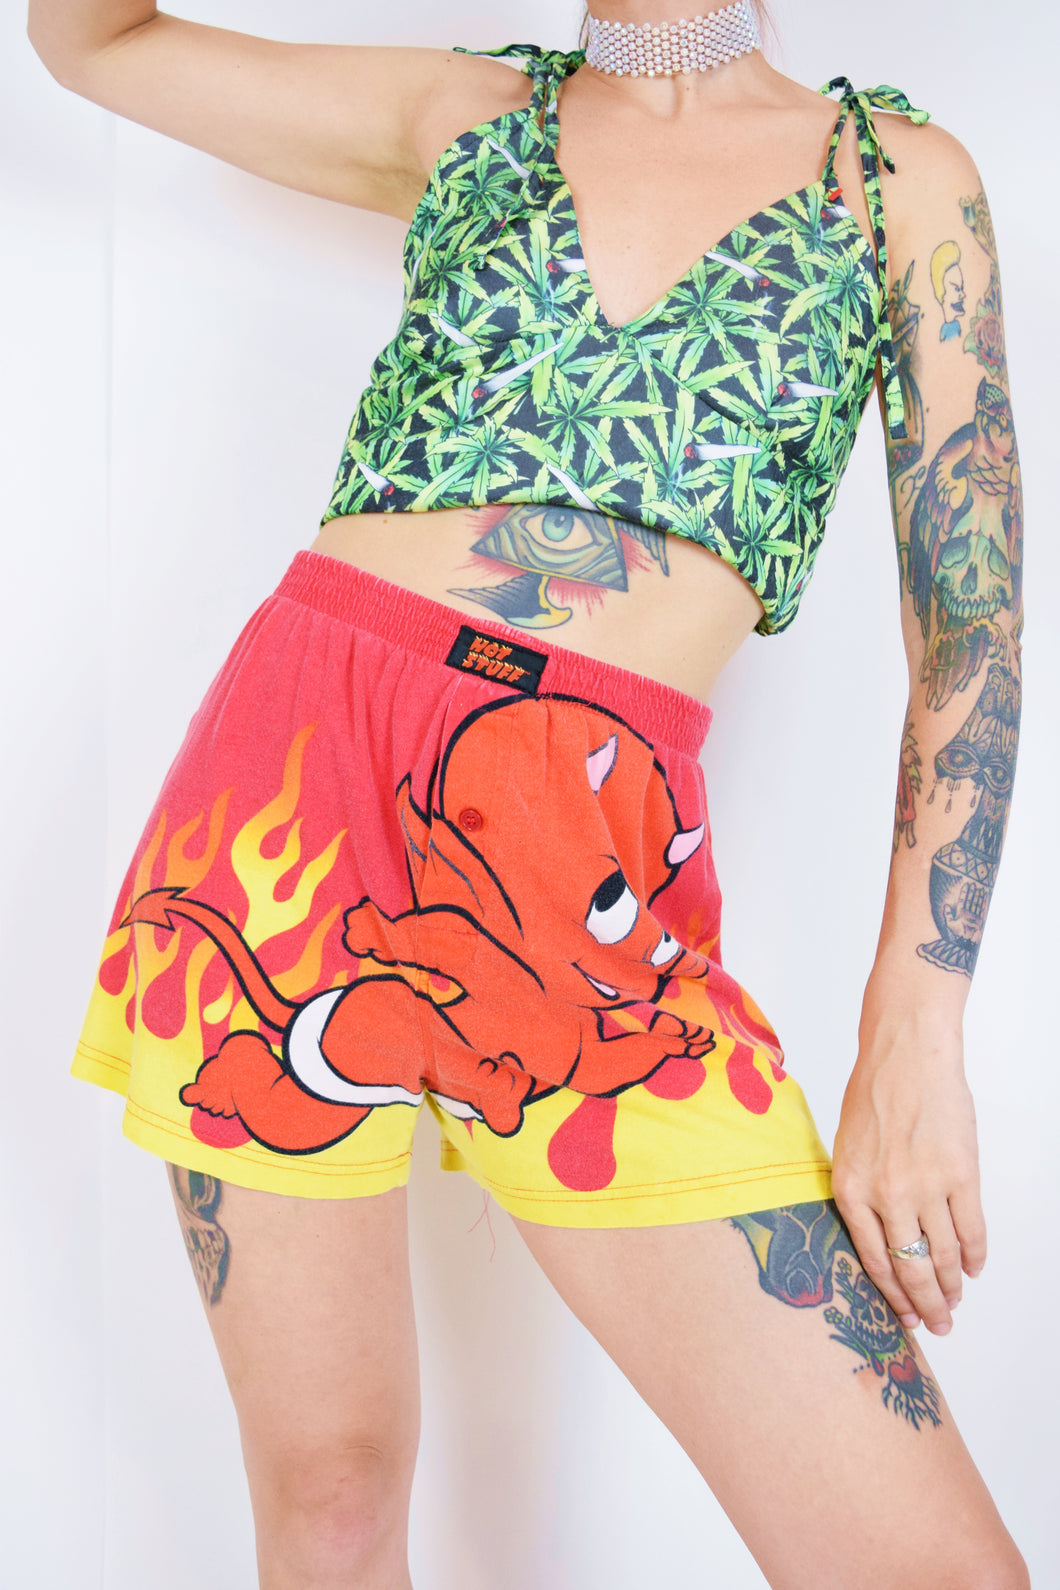 Y2K HOT STUFF NOVELTY SHORTS - S/M